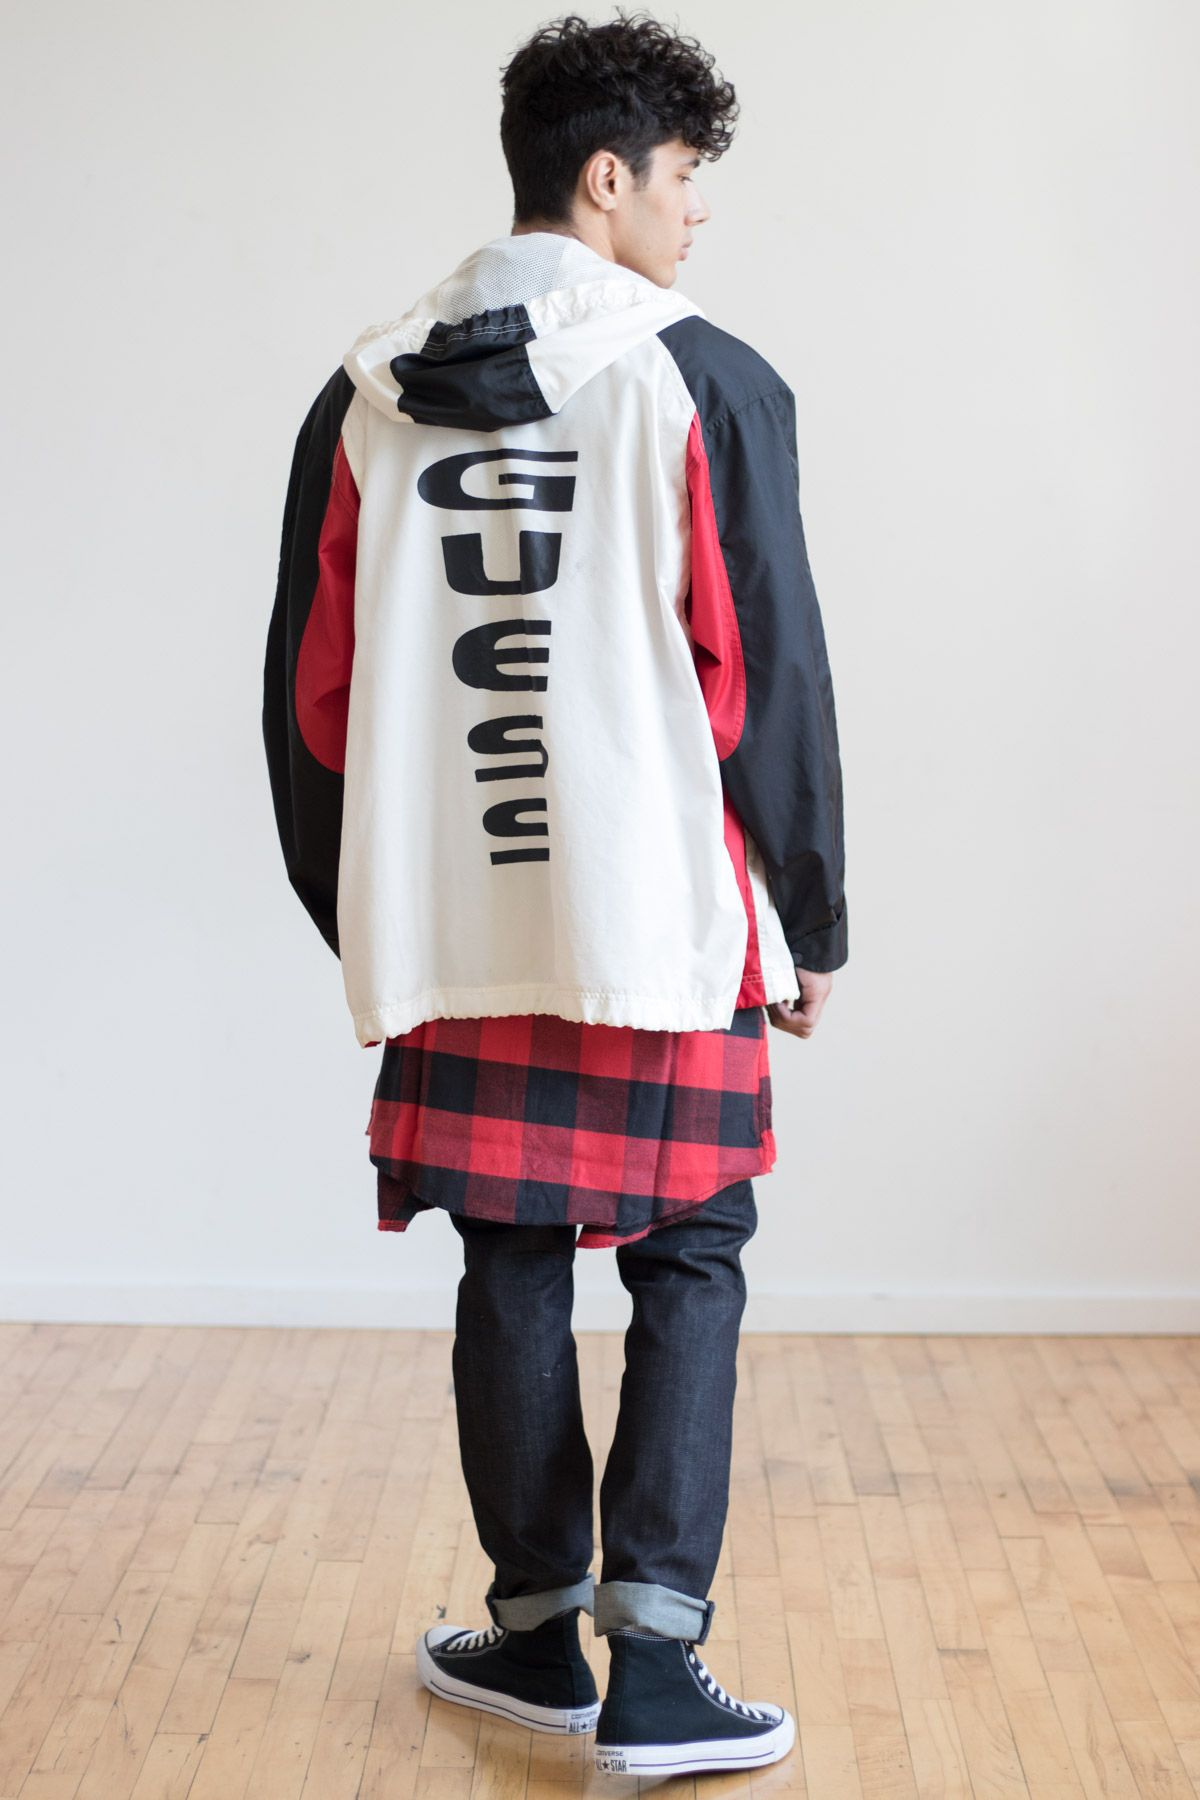 e6ccbdb07 How are you wearing your 90s jacket  We re pairing our with a flannel shirt  wrapped around your waist!